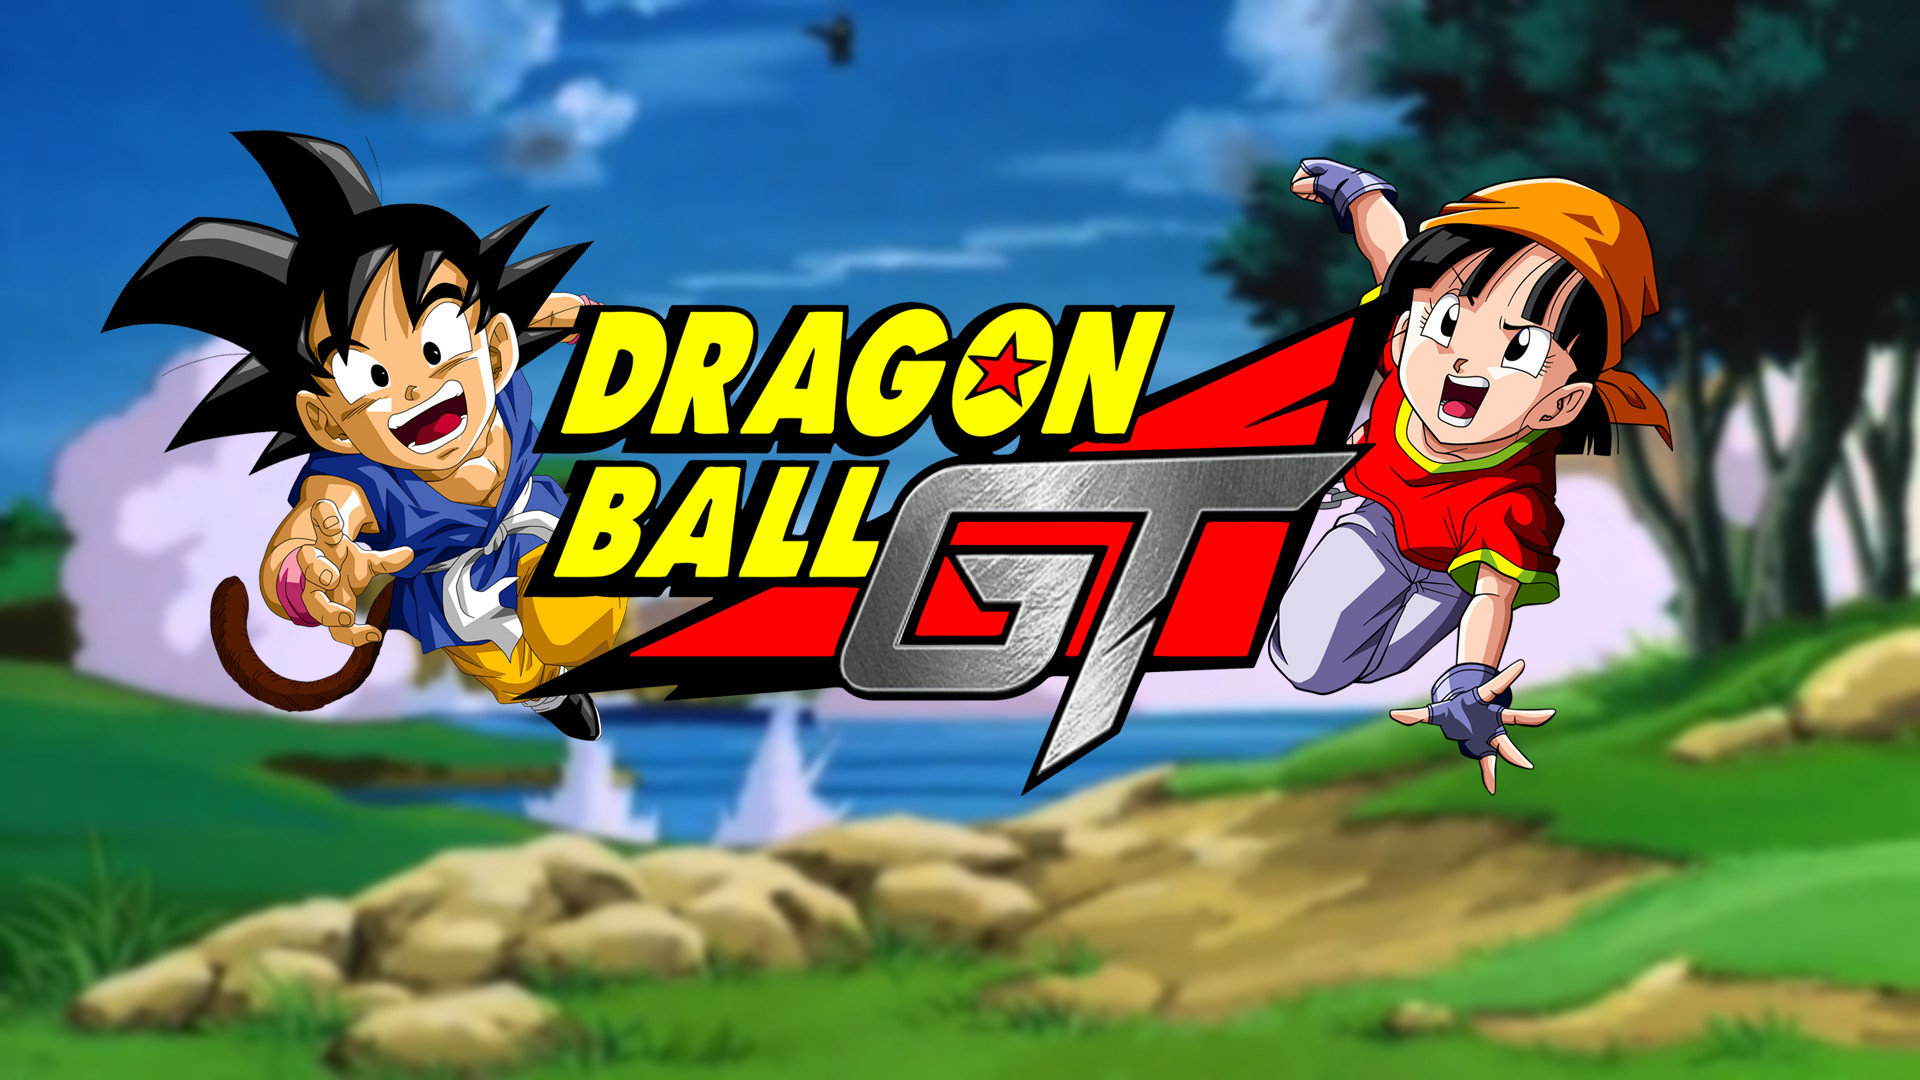 Dragon Ball Gt Wallpapers Hd For Desktop Backgrounds